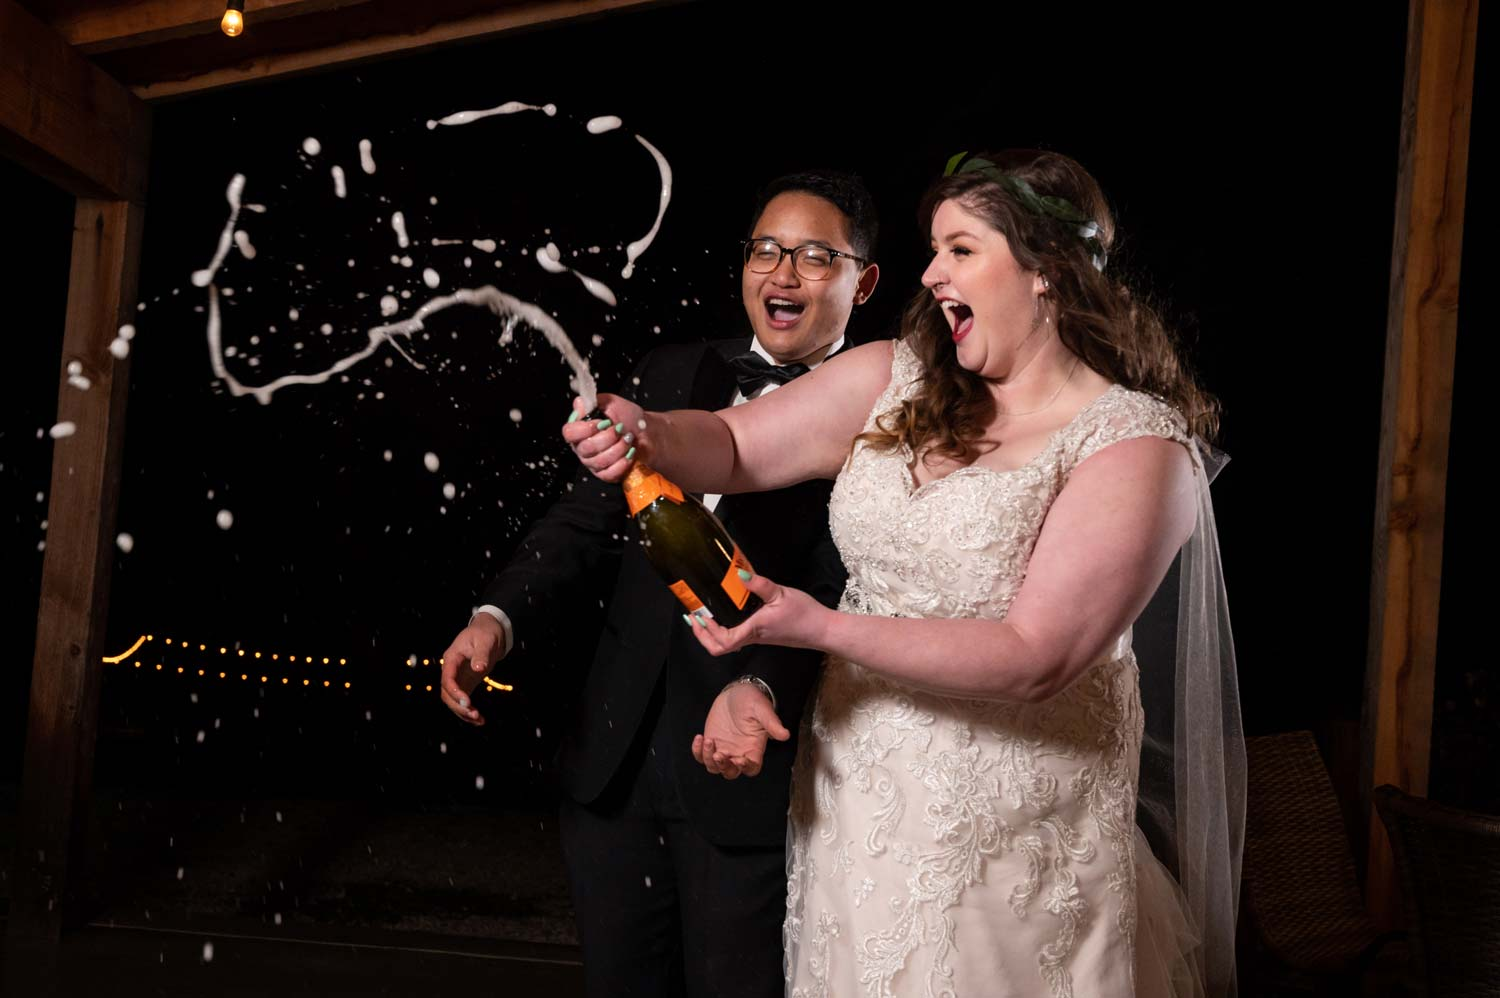 bride and groom spraying champagne at wedding